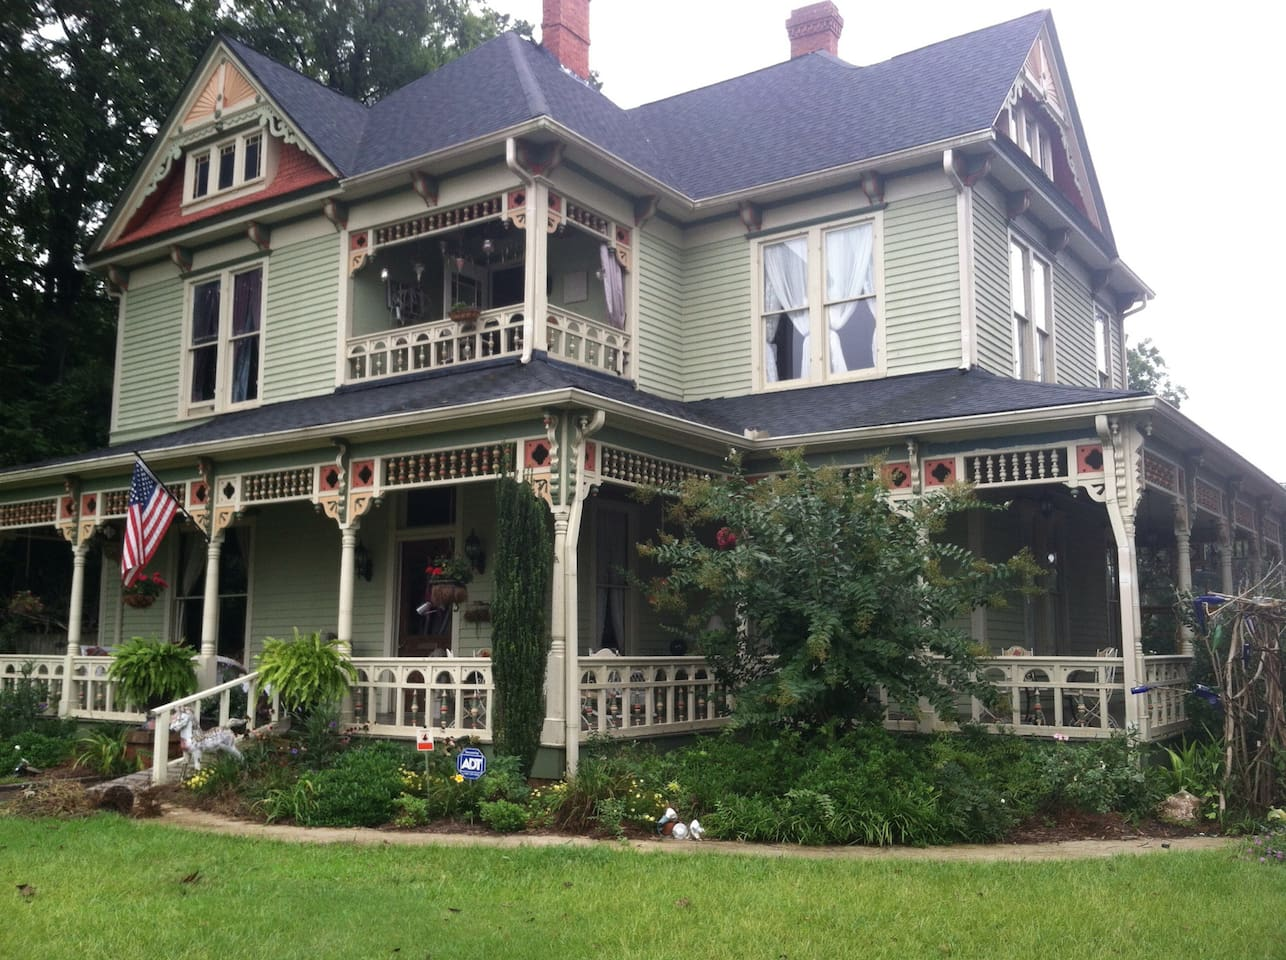 Country Kitchen Barnesville Ga Rumble Seat Inn And Catering Bb Bed Breakfasts For Rent In